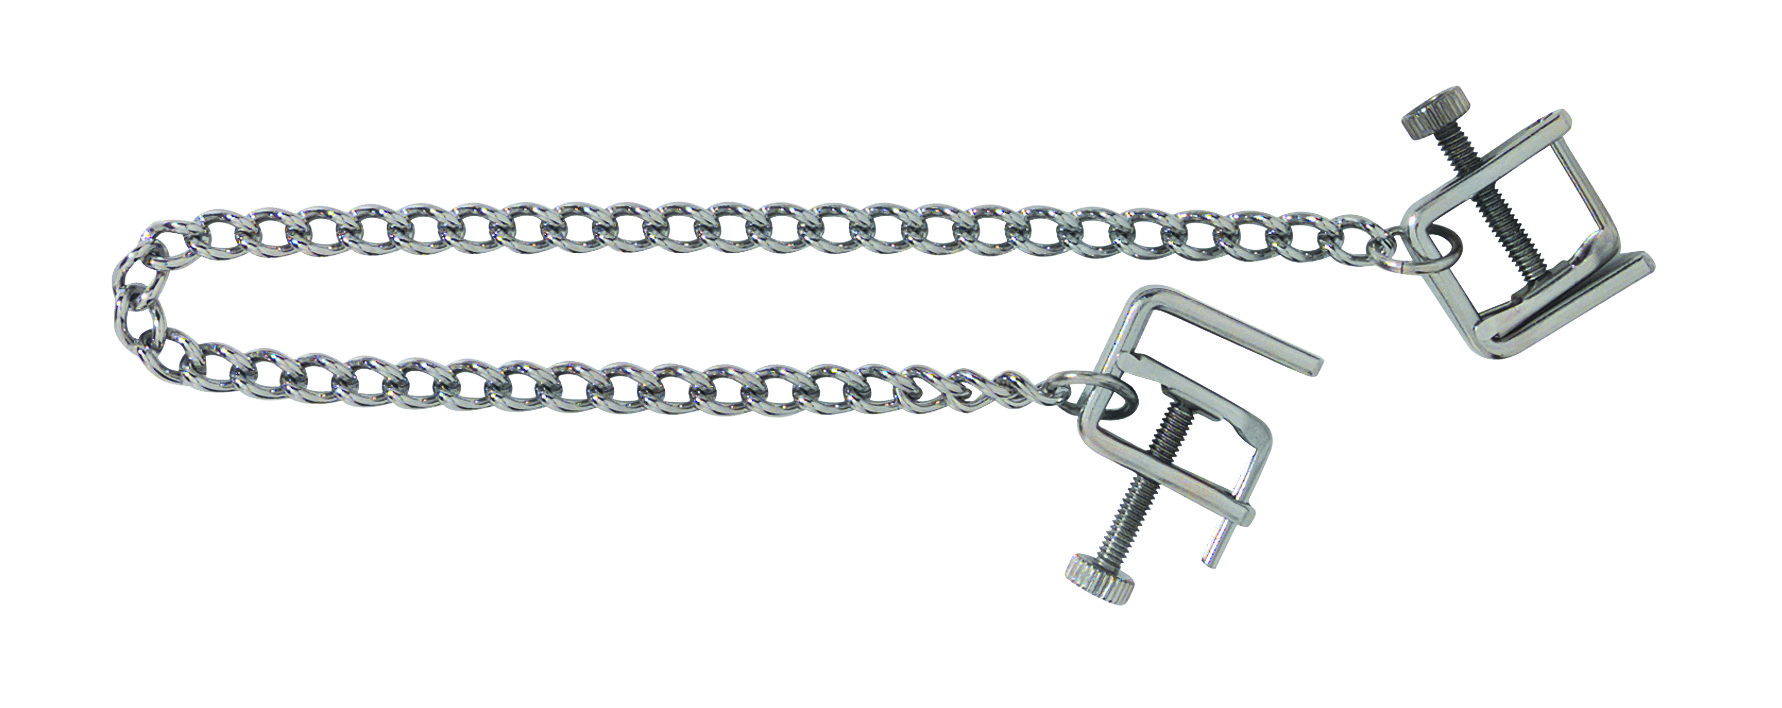 Adjustable Press Clamps - Link Chain